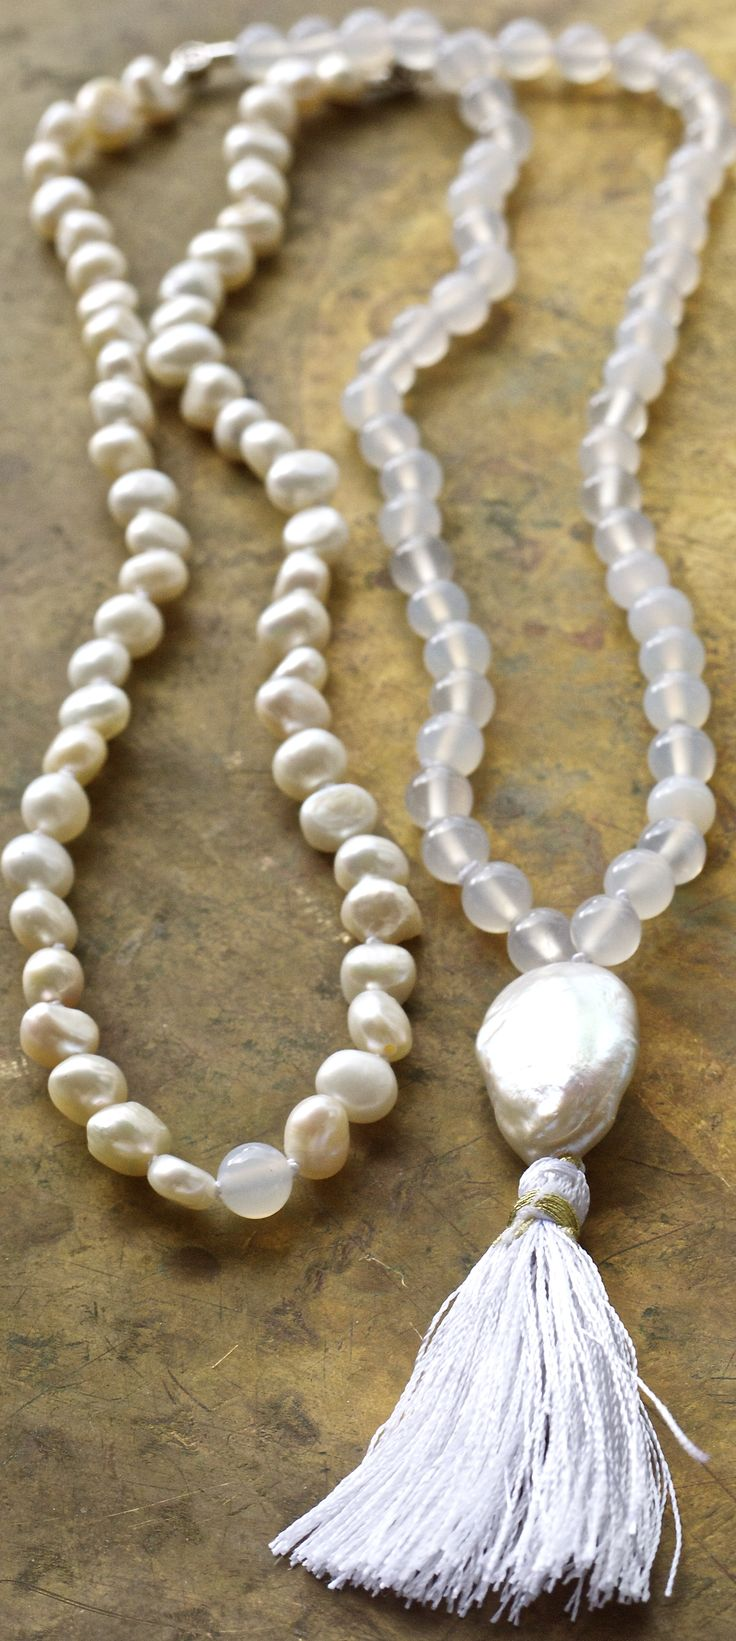 Luxe pearl and agate white mala with a fabulous baroque pearl focal bead from Pillow Book Design.